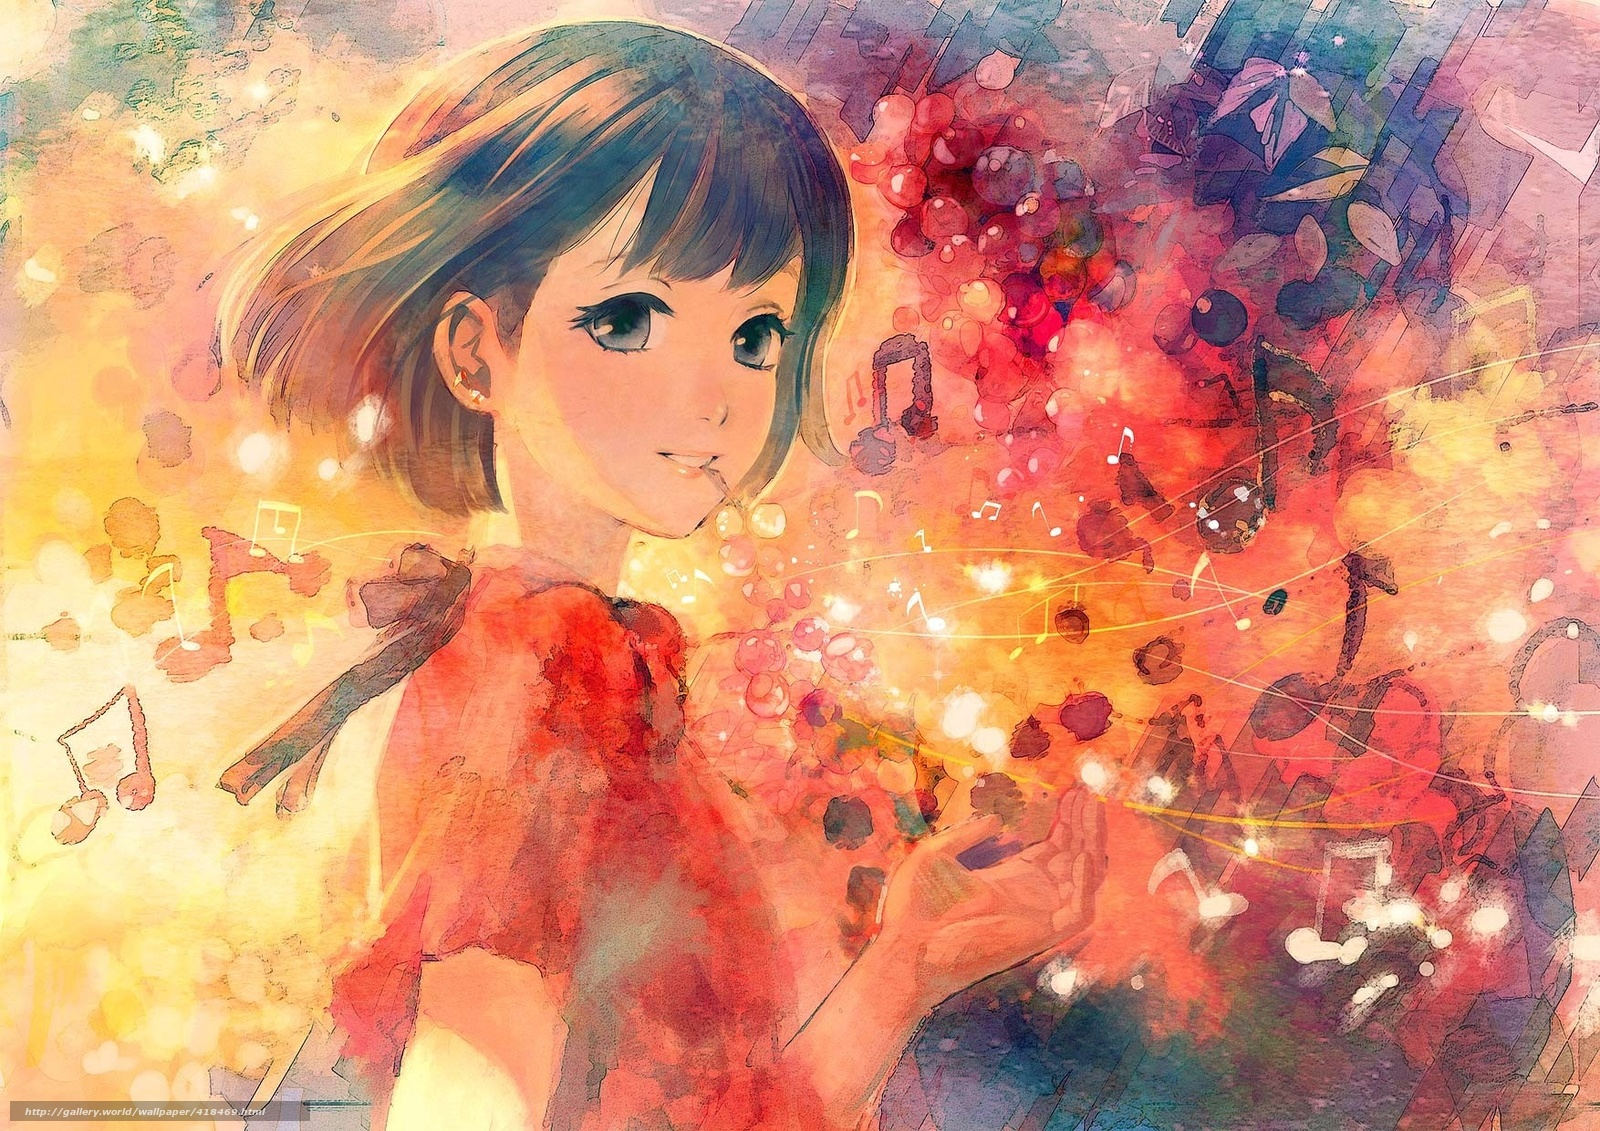 Anime Art Wallpaper  WallpaperSafari